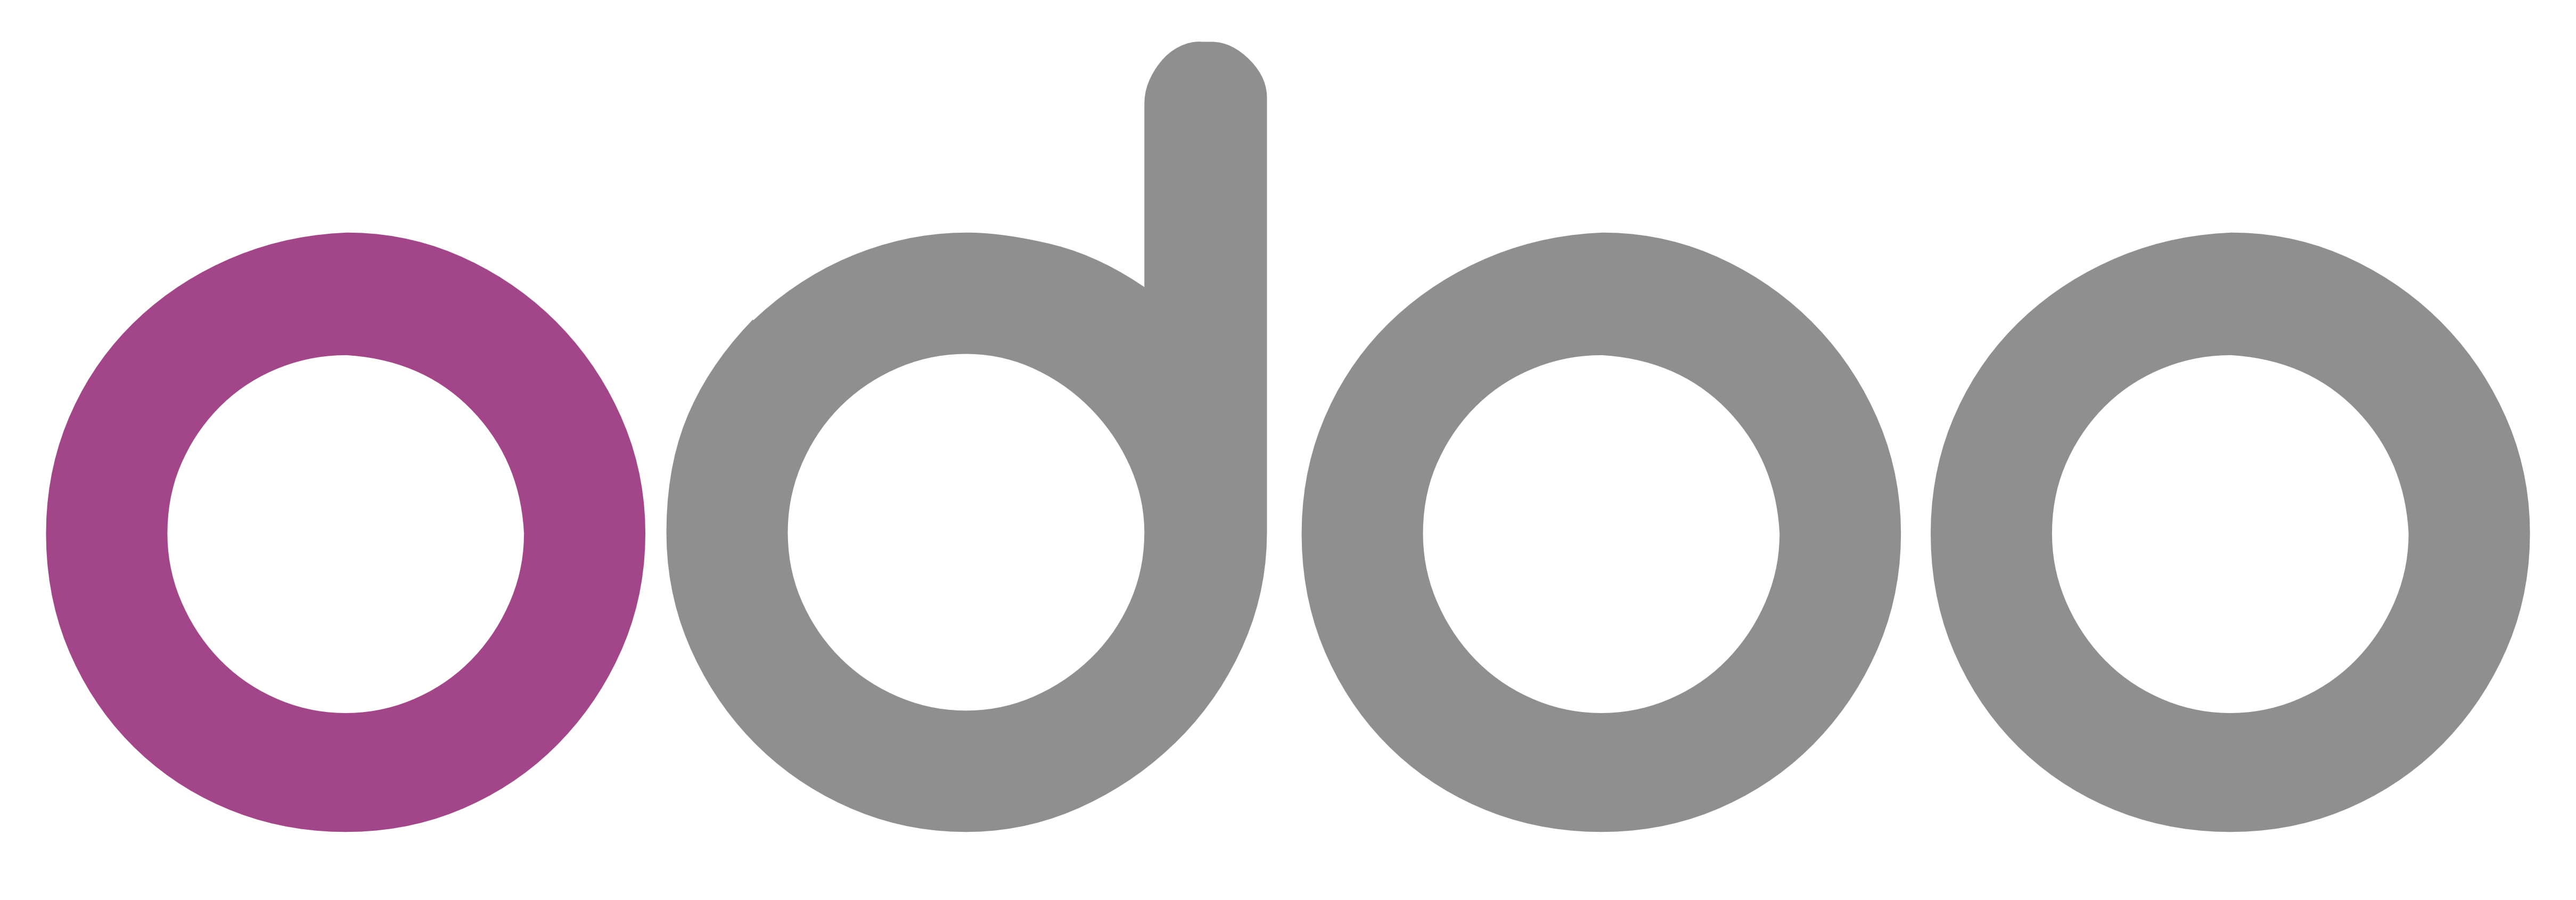 odoo � logos download